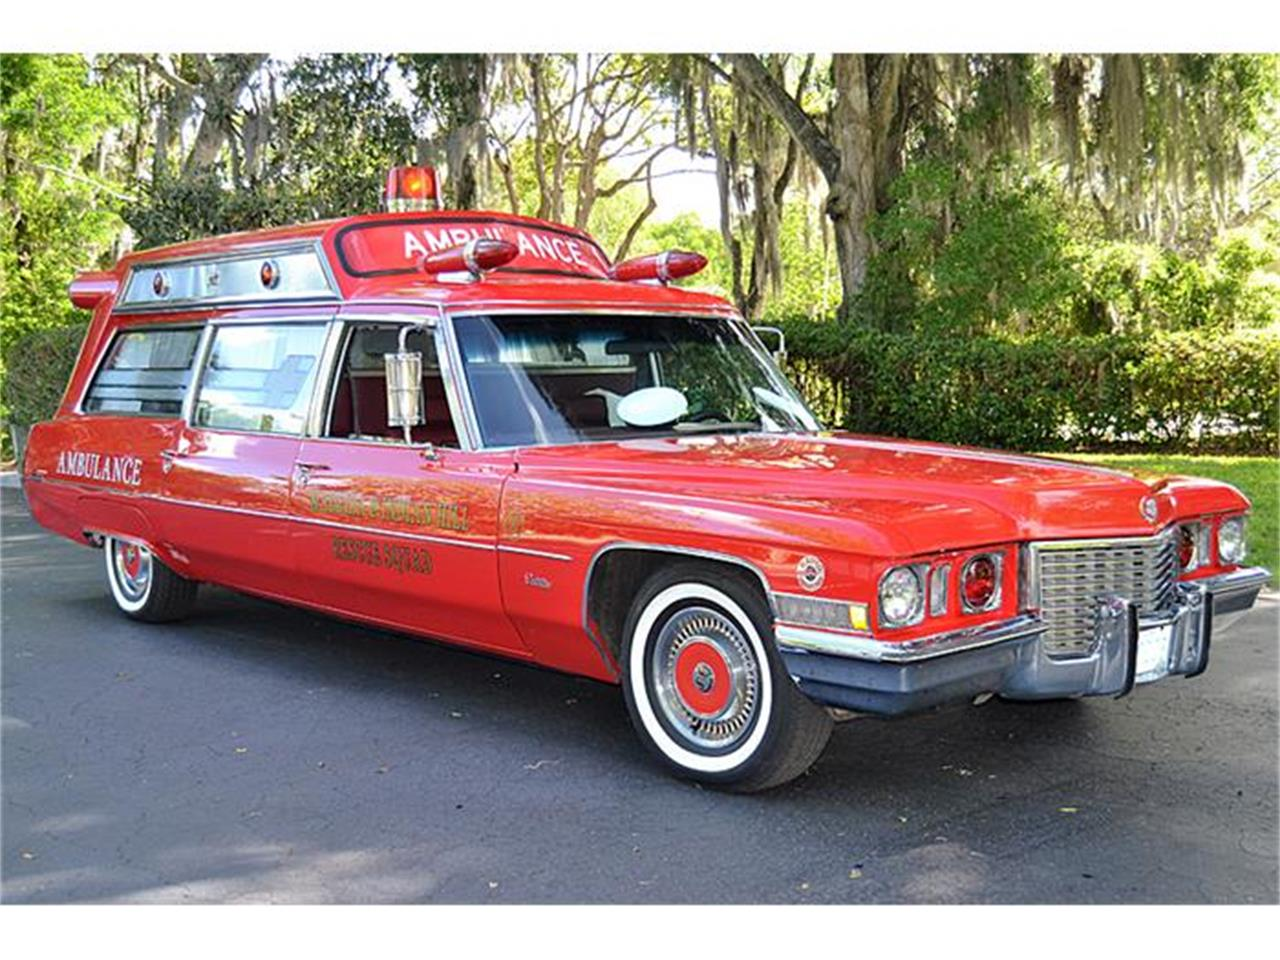 Large Picture of Classic 1972 S&S Kesington Professional Ambulance Offered by Classic Dreamcars, Inc. - IWNH